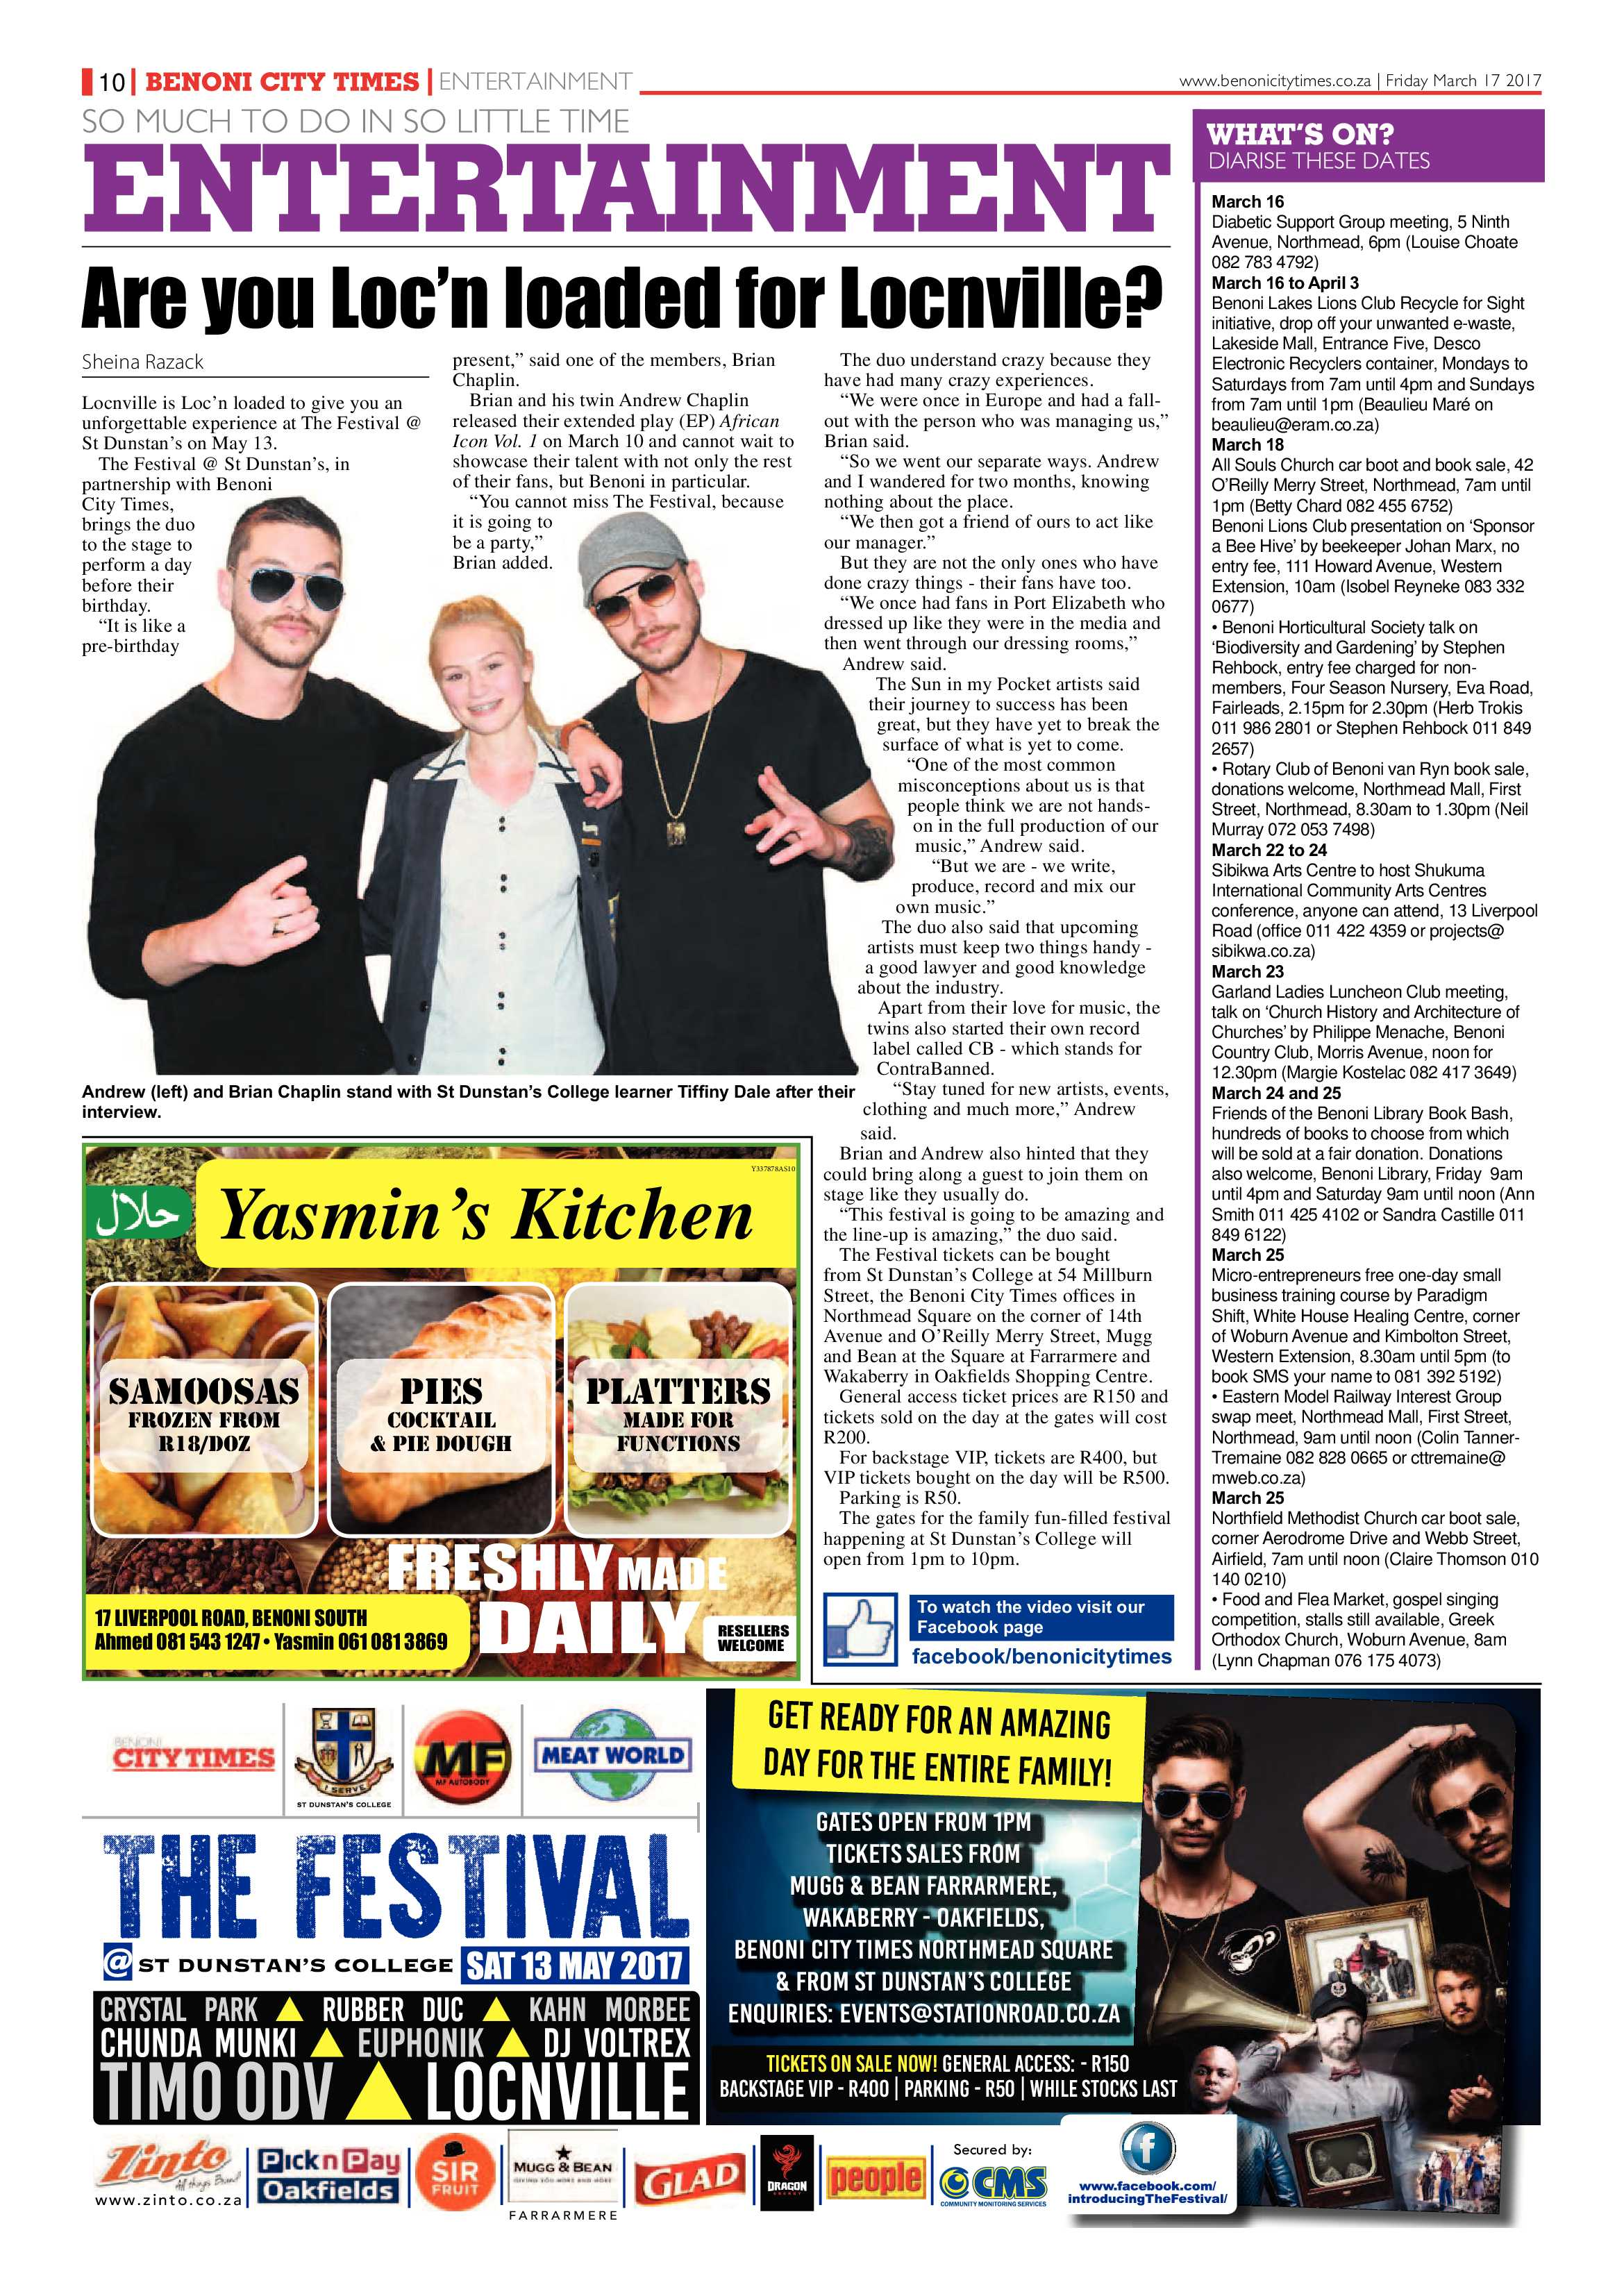 benoni-city-times-16-march-2017-epapers-page-10